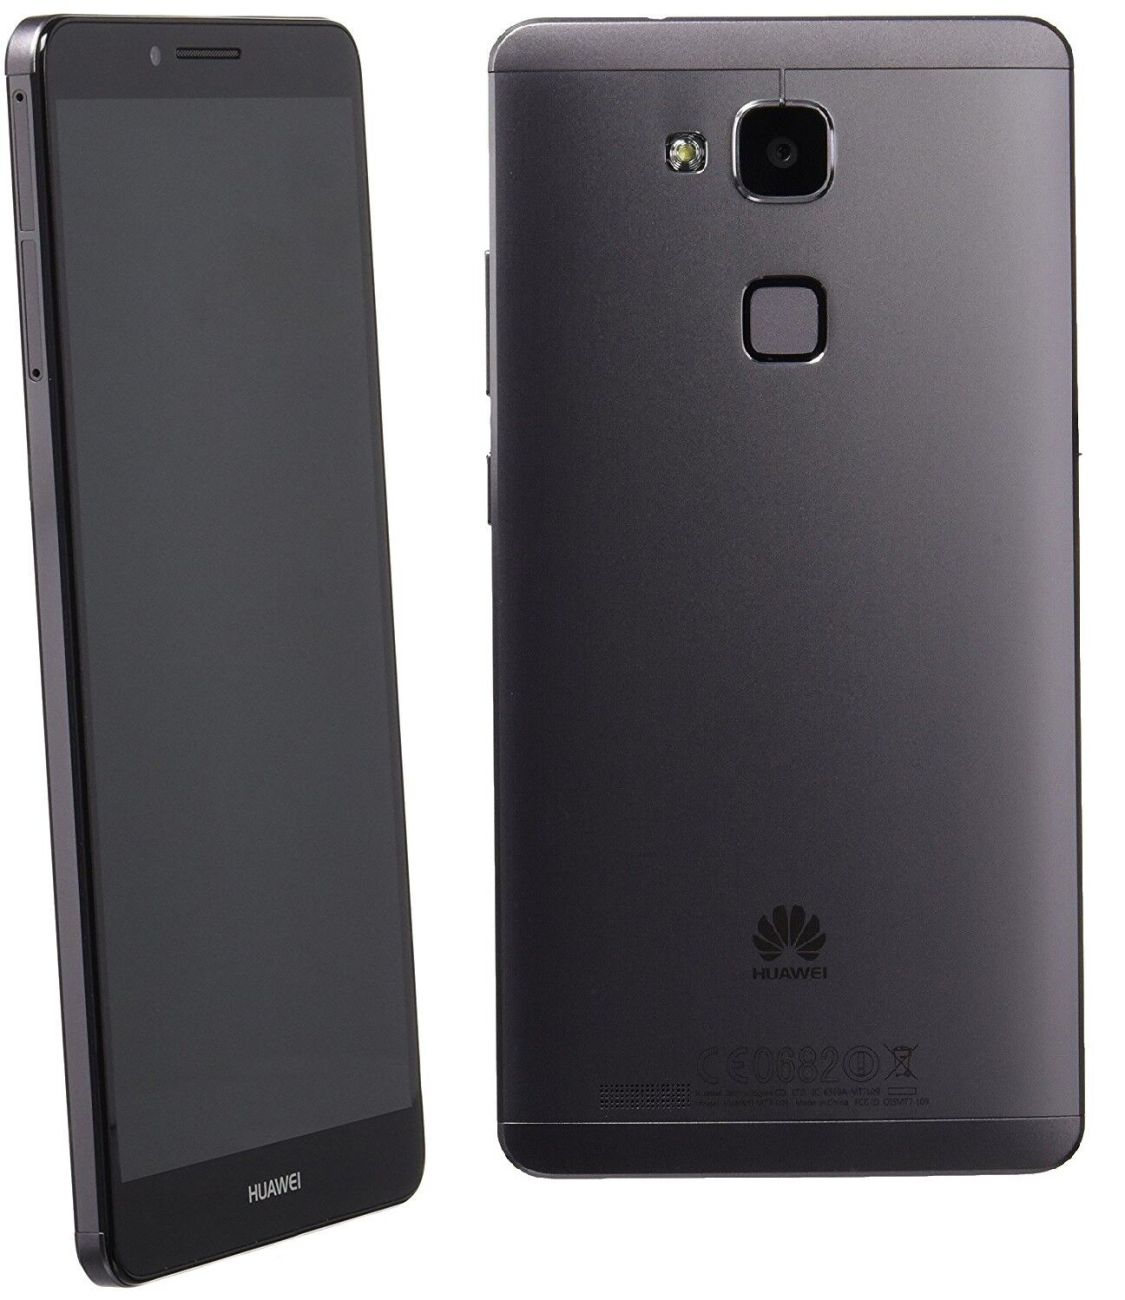 HUAWEI Ascend Mate 7 LTE Smartphone Android 15,7cm 6Zoll 16GB ohne Simlock OVP